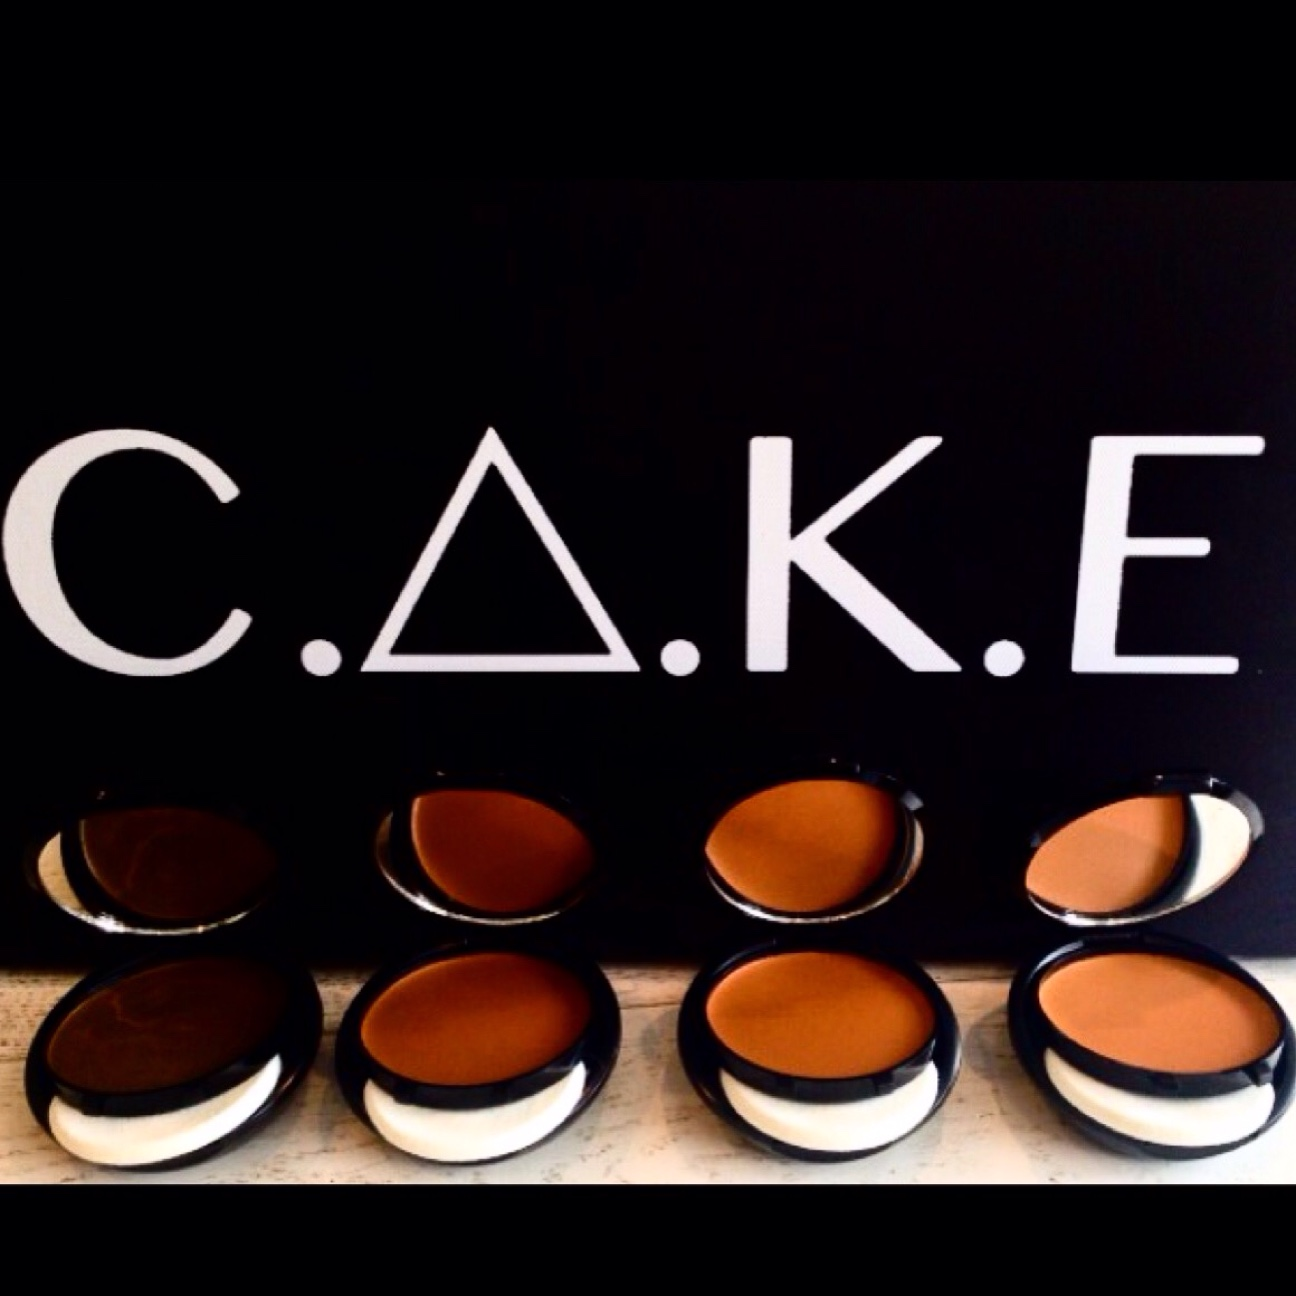 C.A.K.E. Cream Foundations